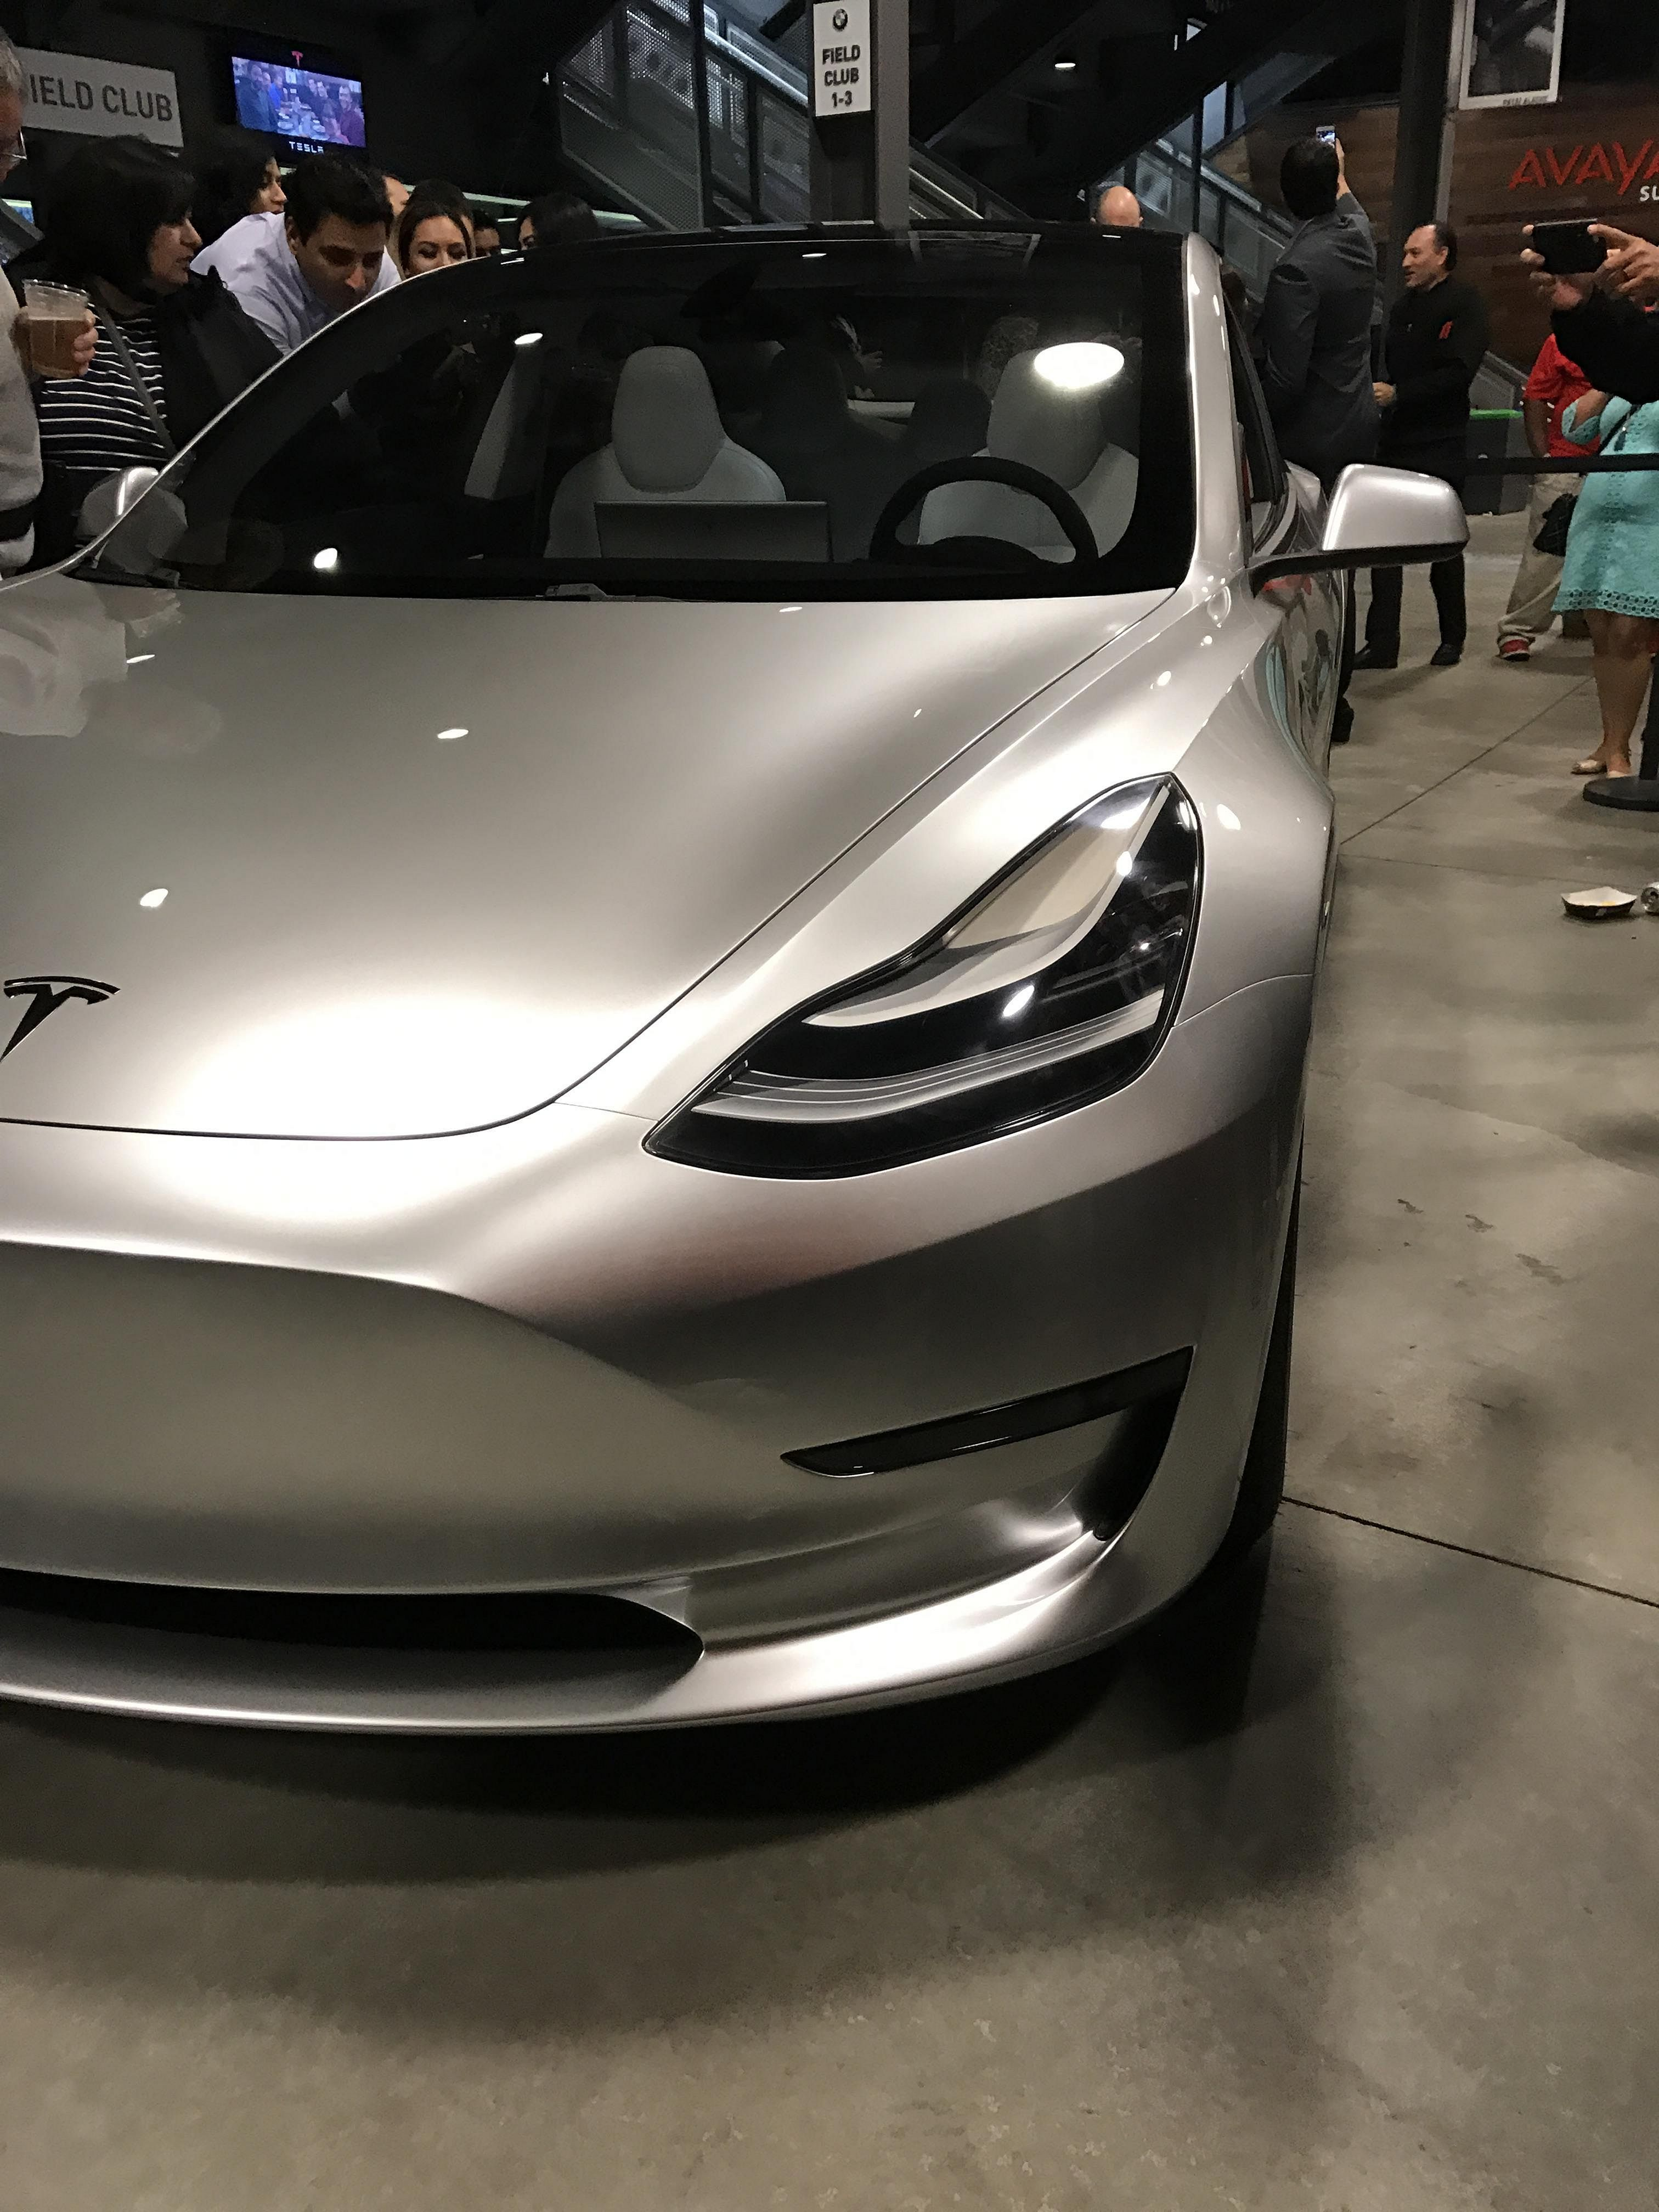 90 Impressive Tesla Model 3 Electric Vehicle Design